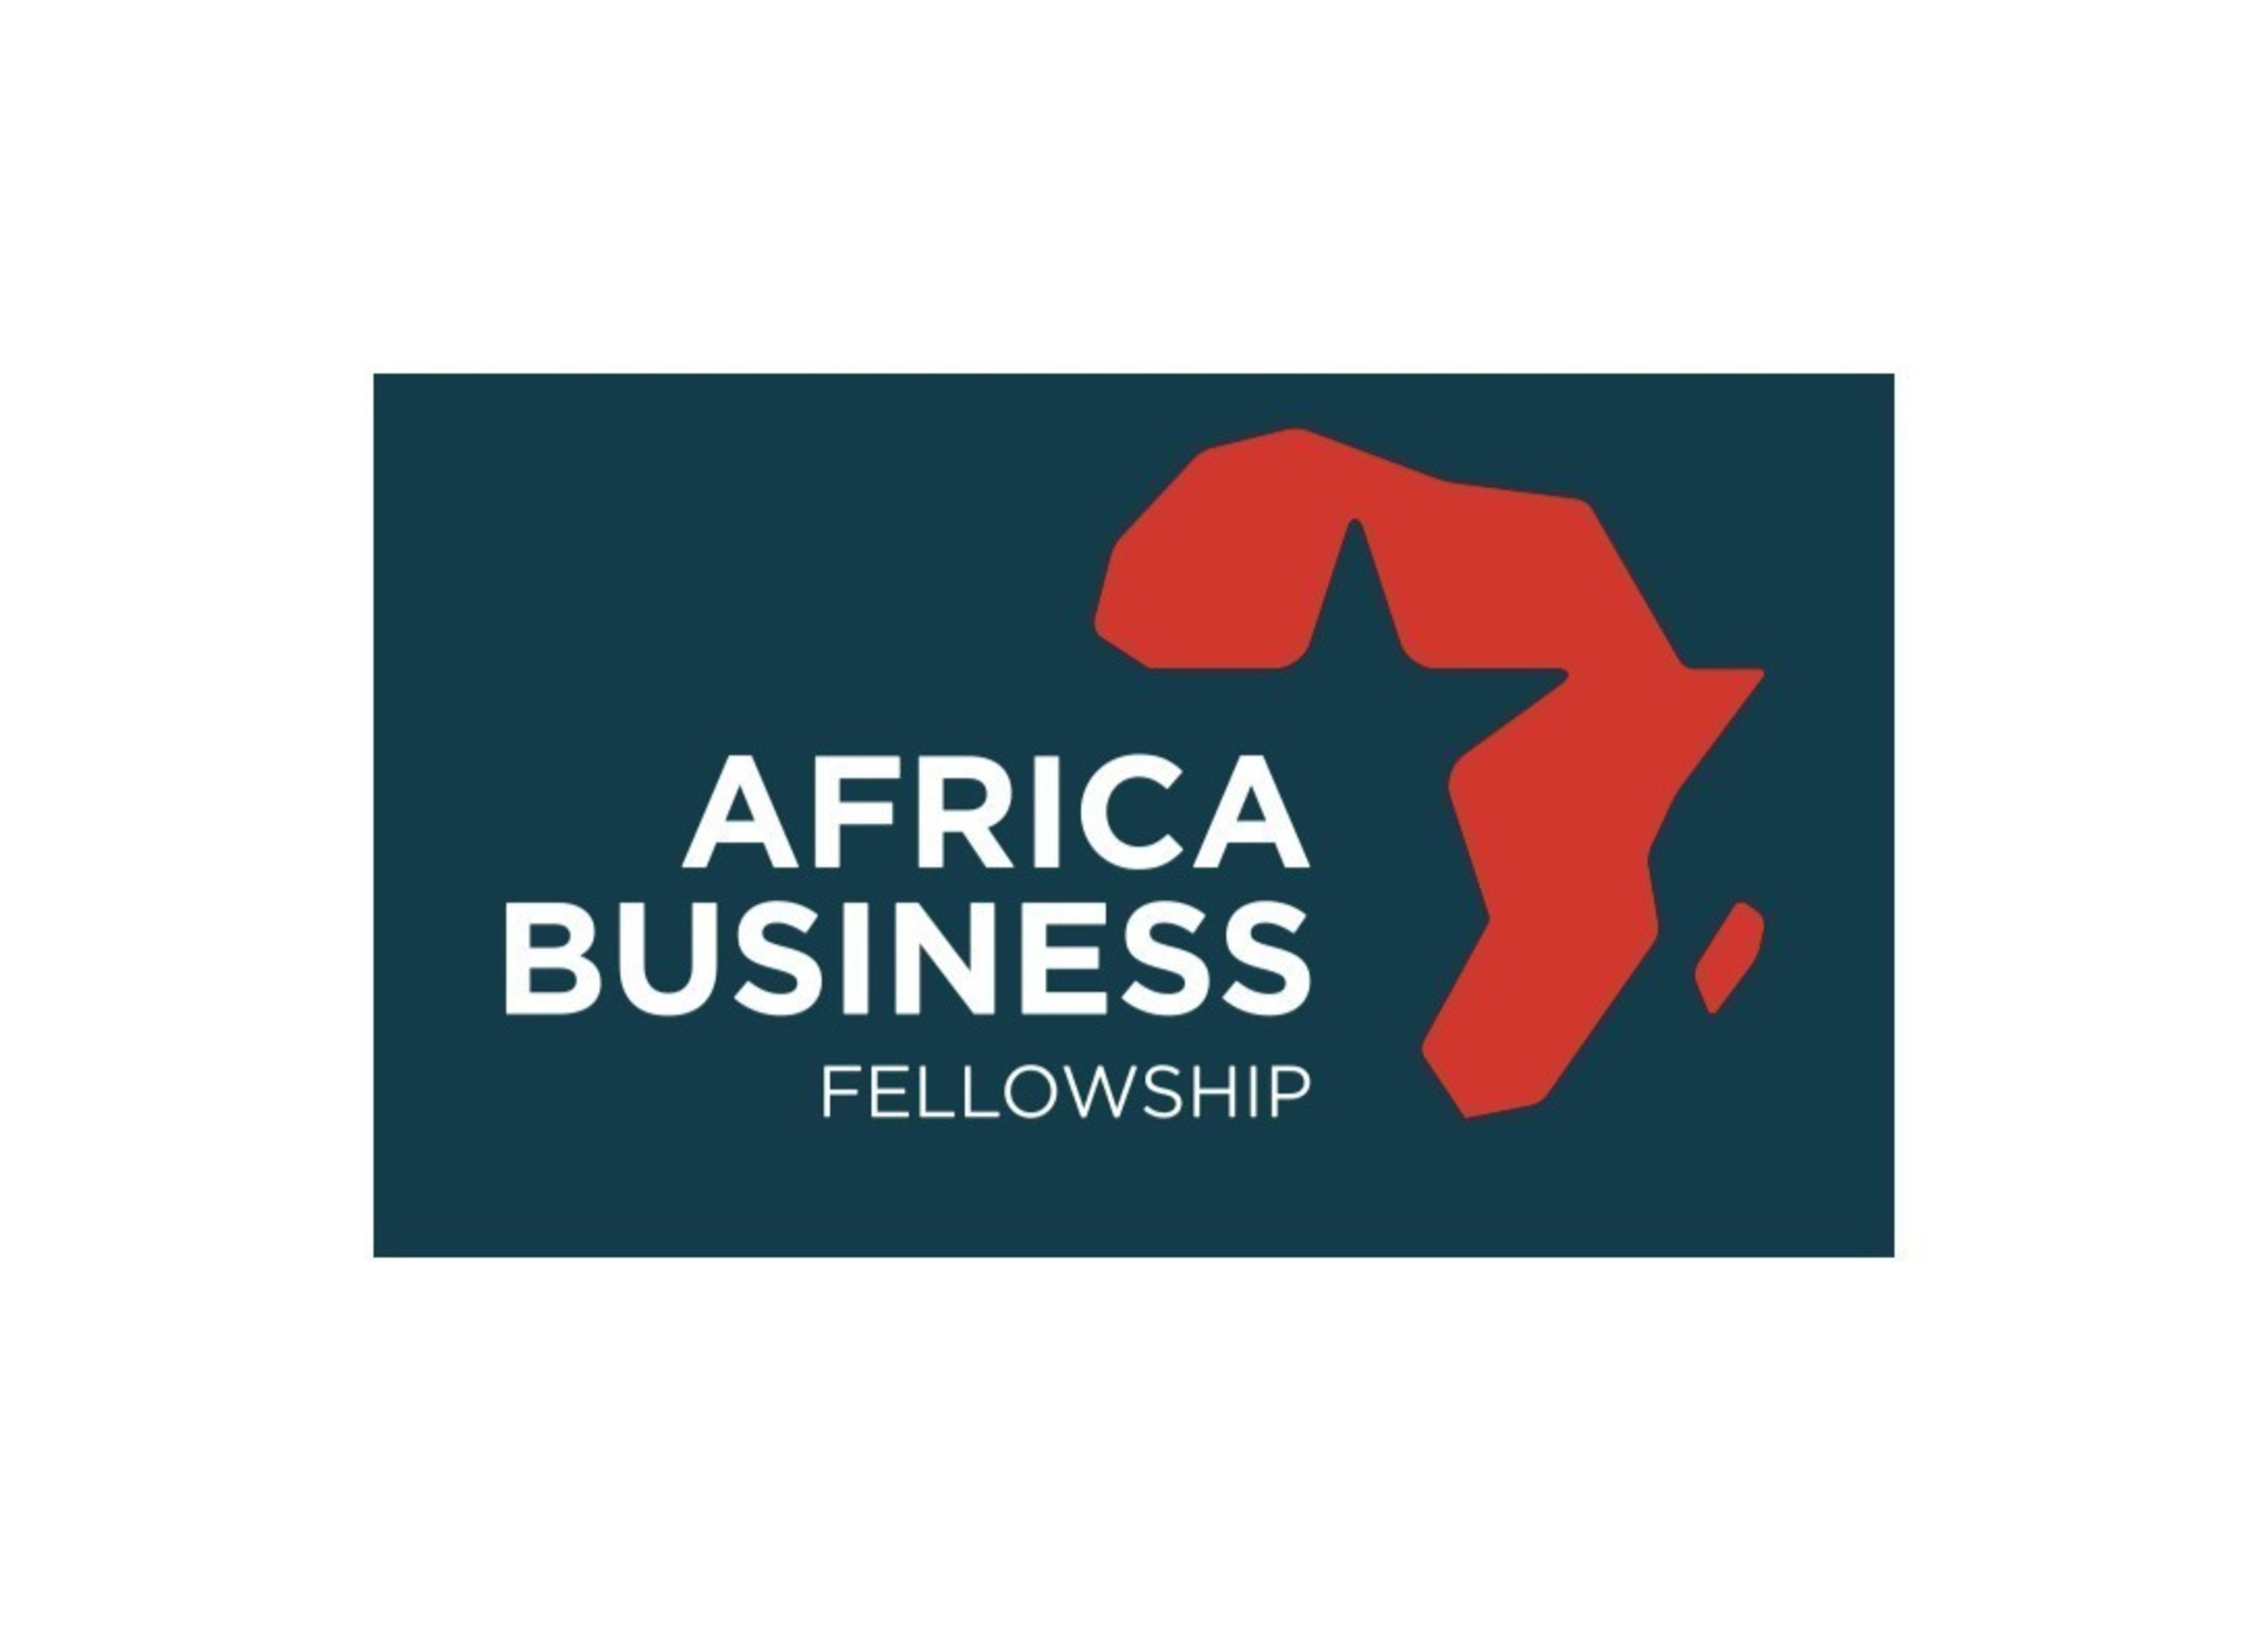 Newly launched Africa Business Fellowship opens application